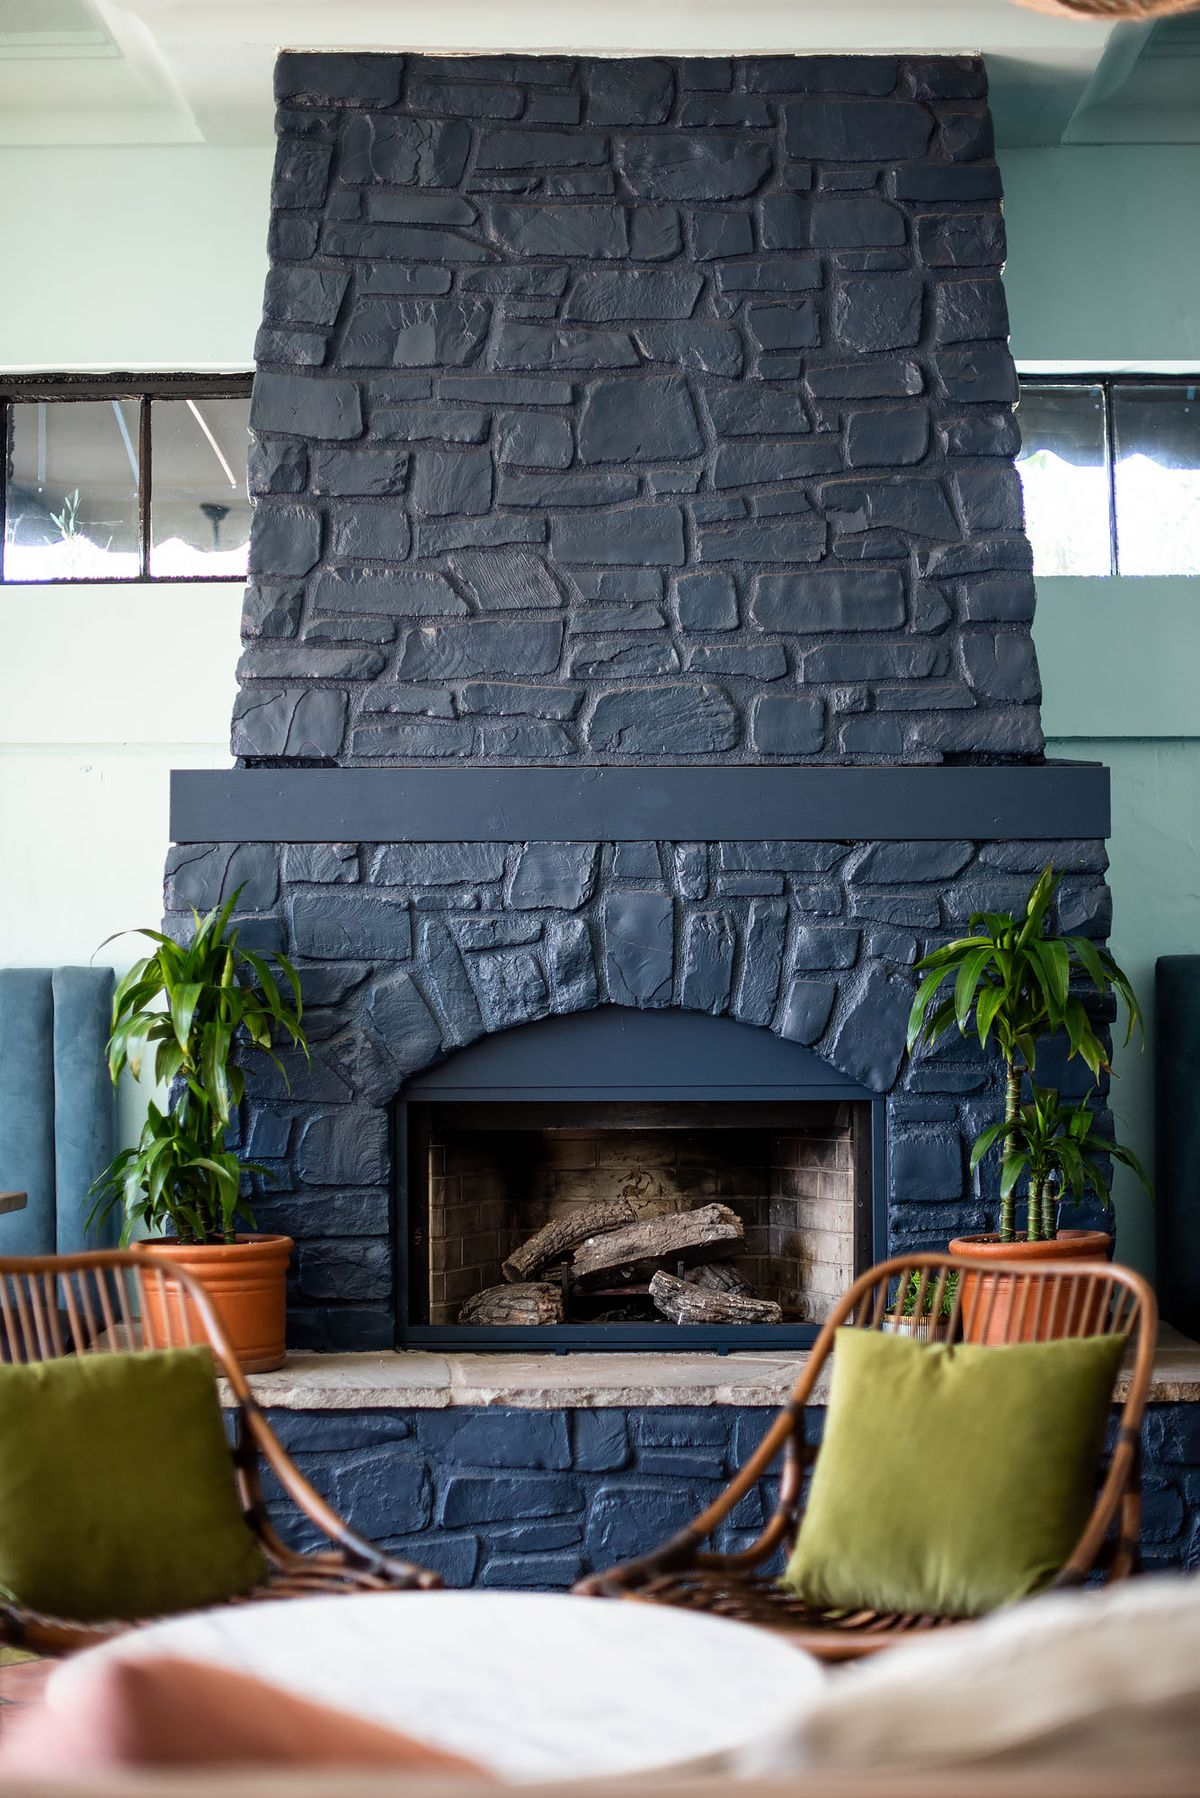 A painted fireplace at a cozy bar.